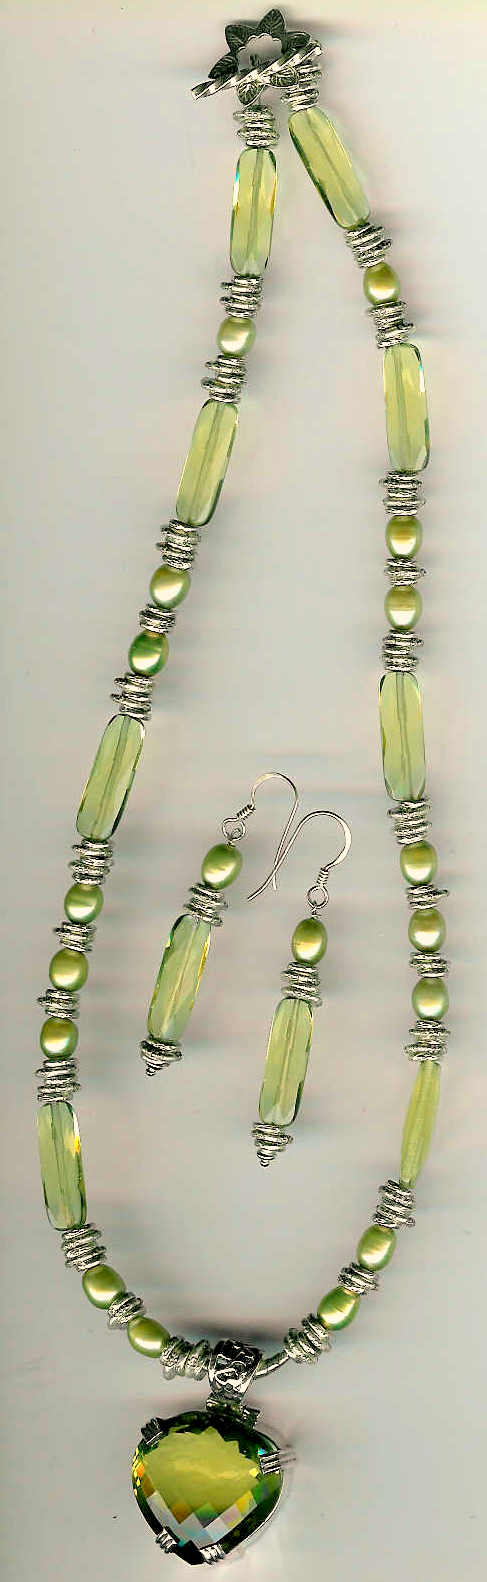 9. Lemon Topaz Pendant, Yellow Crystals, Green Pearls with Karen Hill Sterling Silver + Earrings